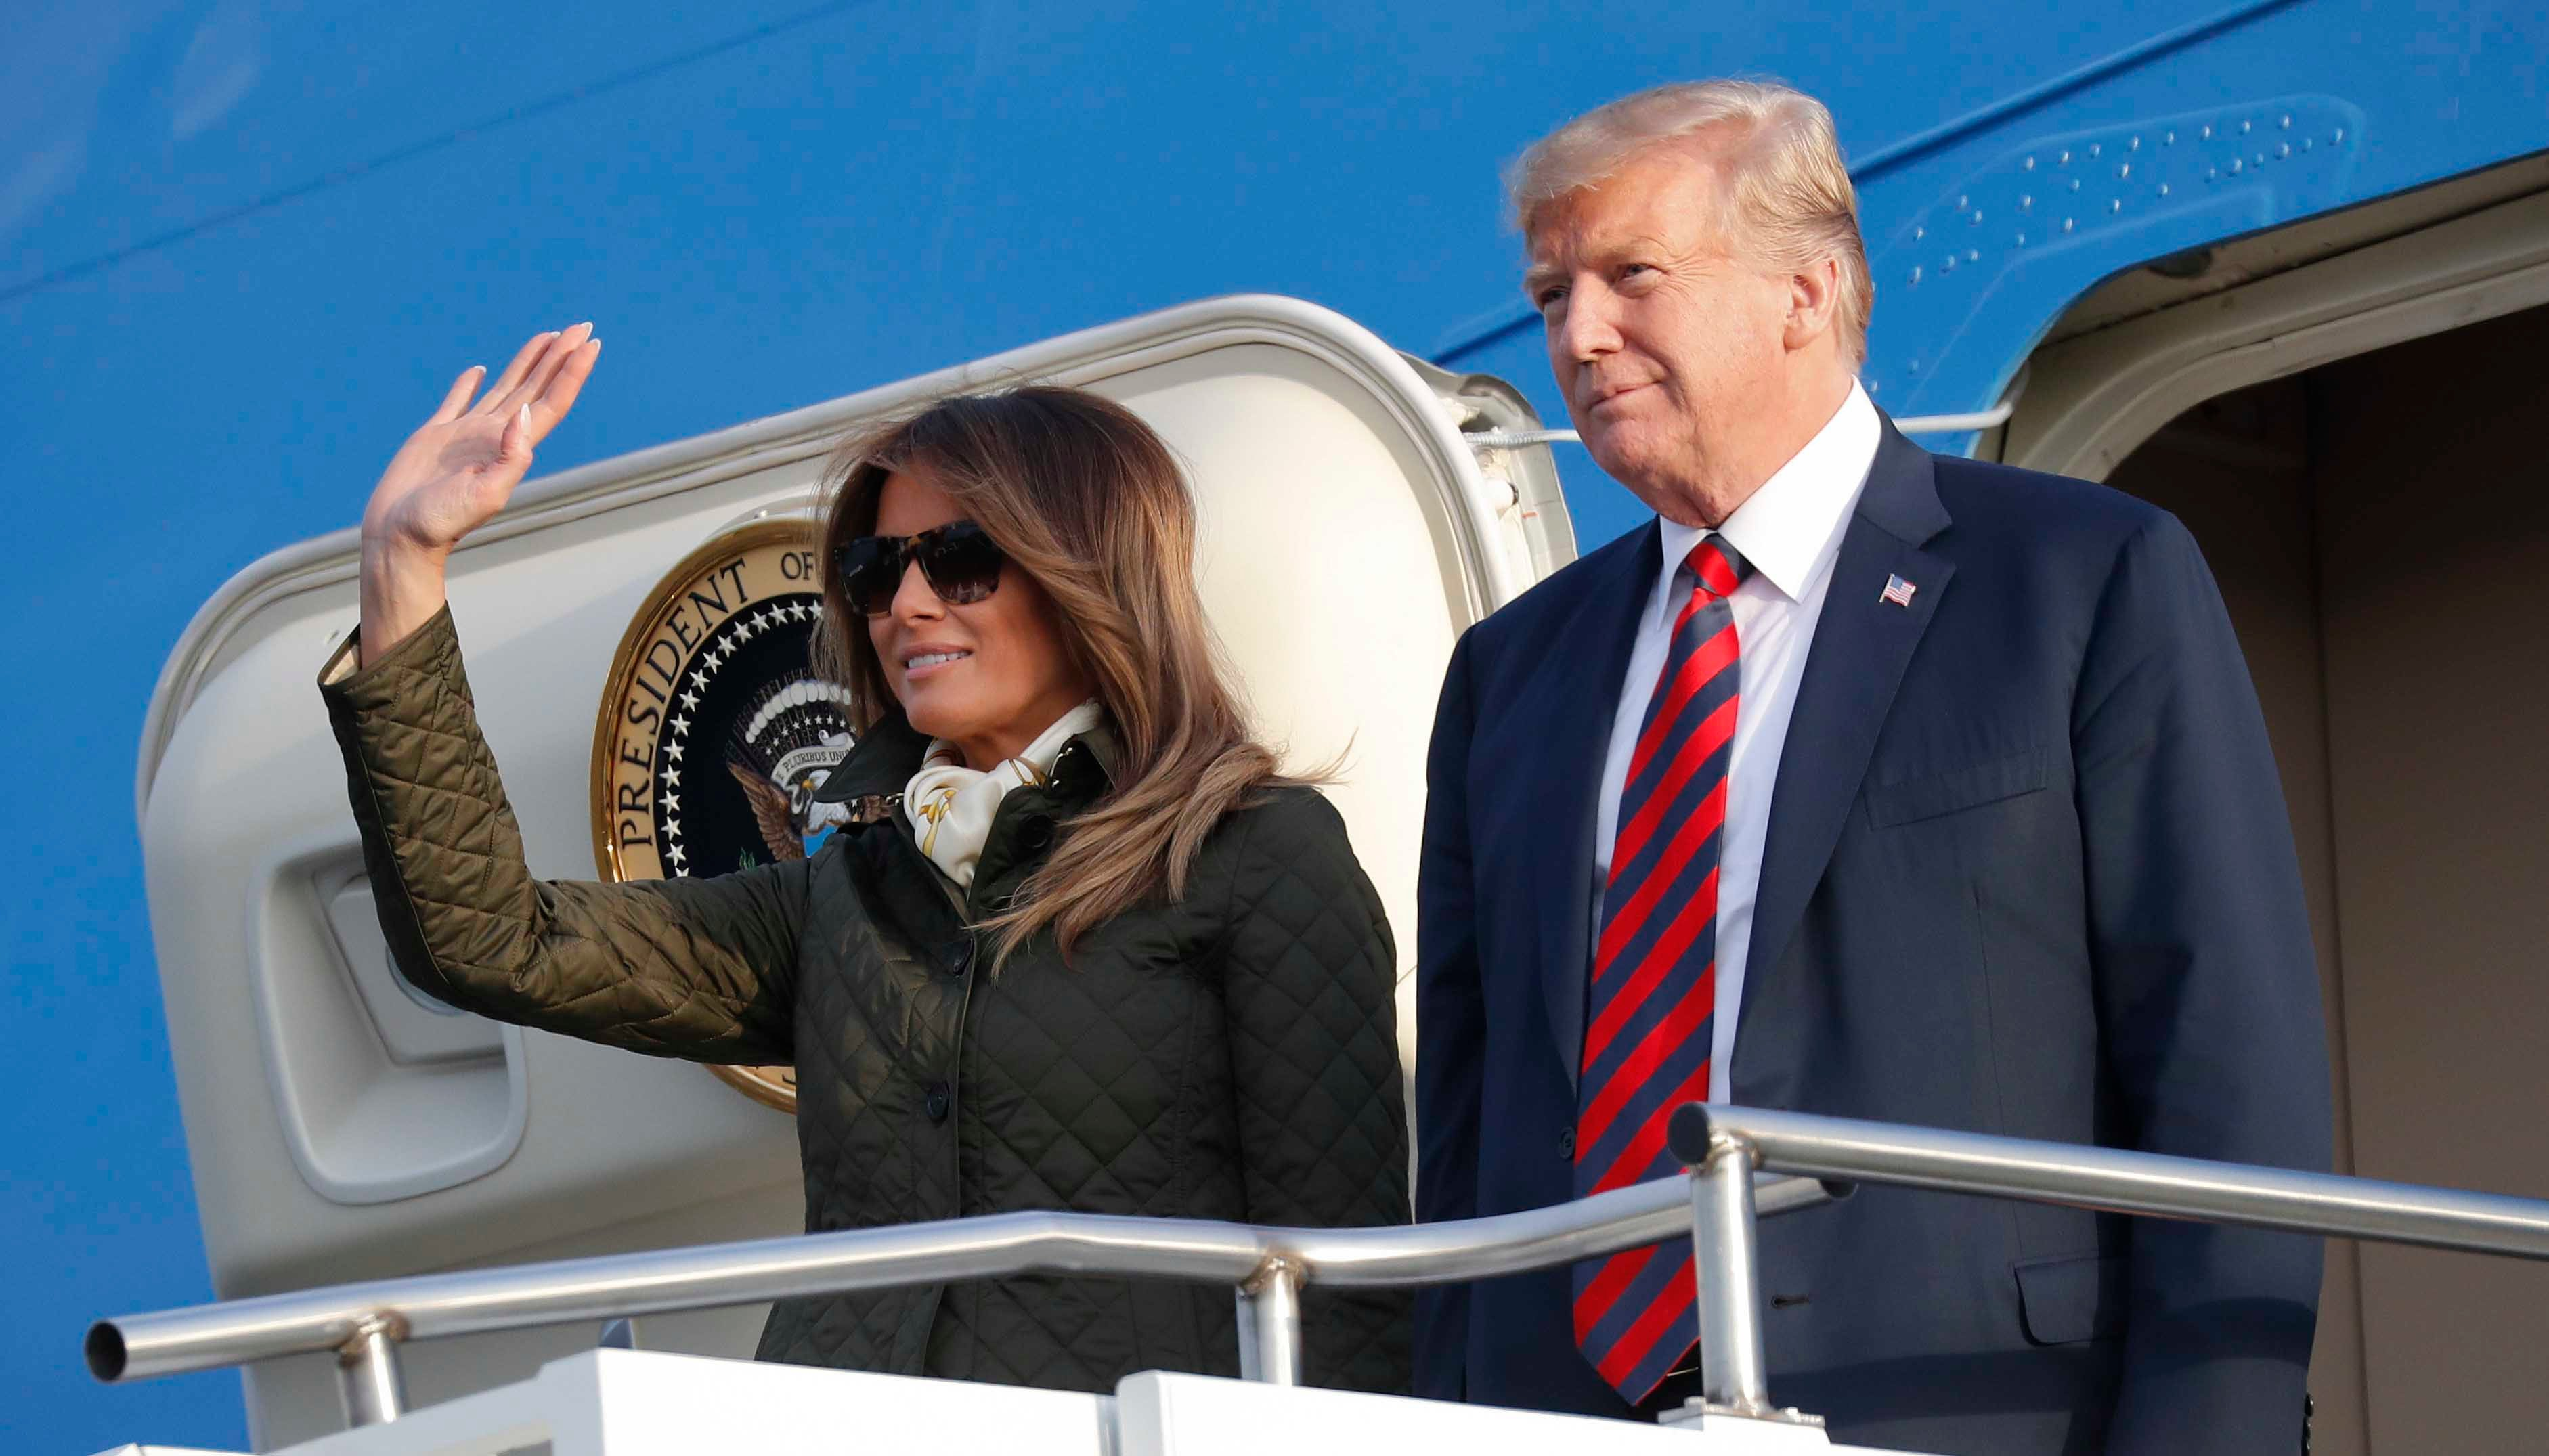 President Donald Trump and first lady Melania Trump arrived at Glasgow Prestwick Airport in Scotland on Friday, July 13, 2018. (AP Photo/Pablo Martinez Monsivais)